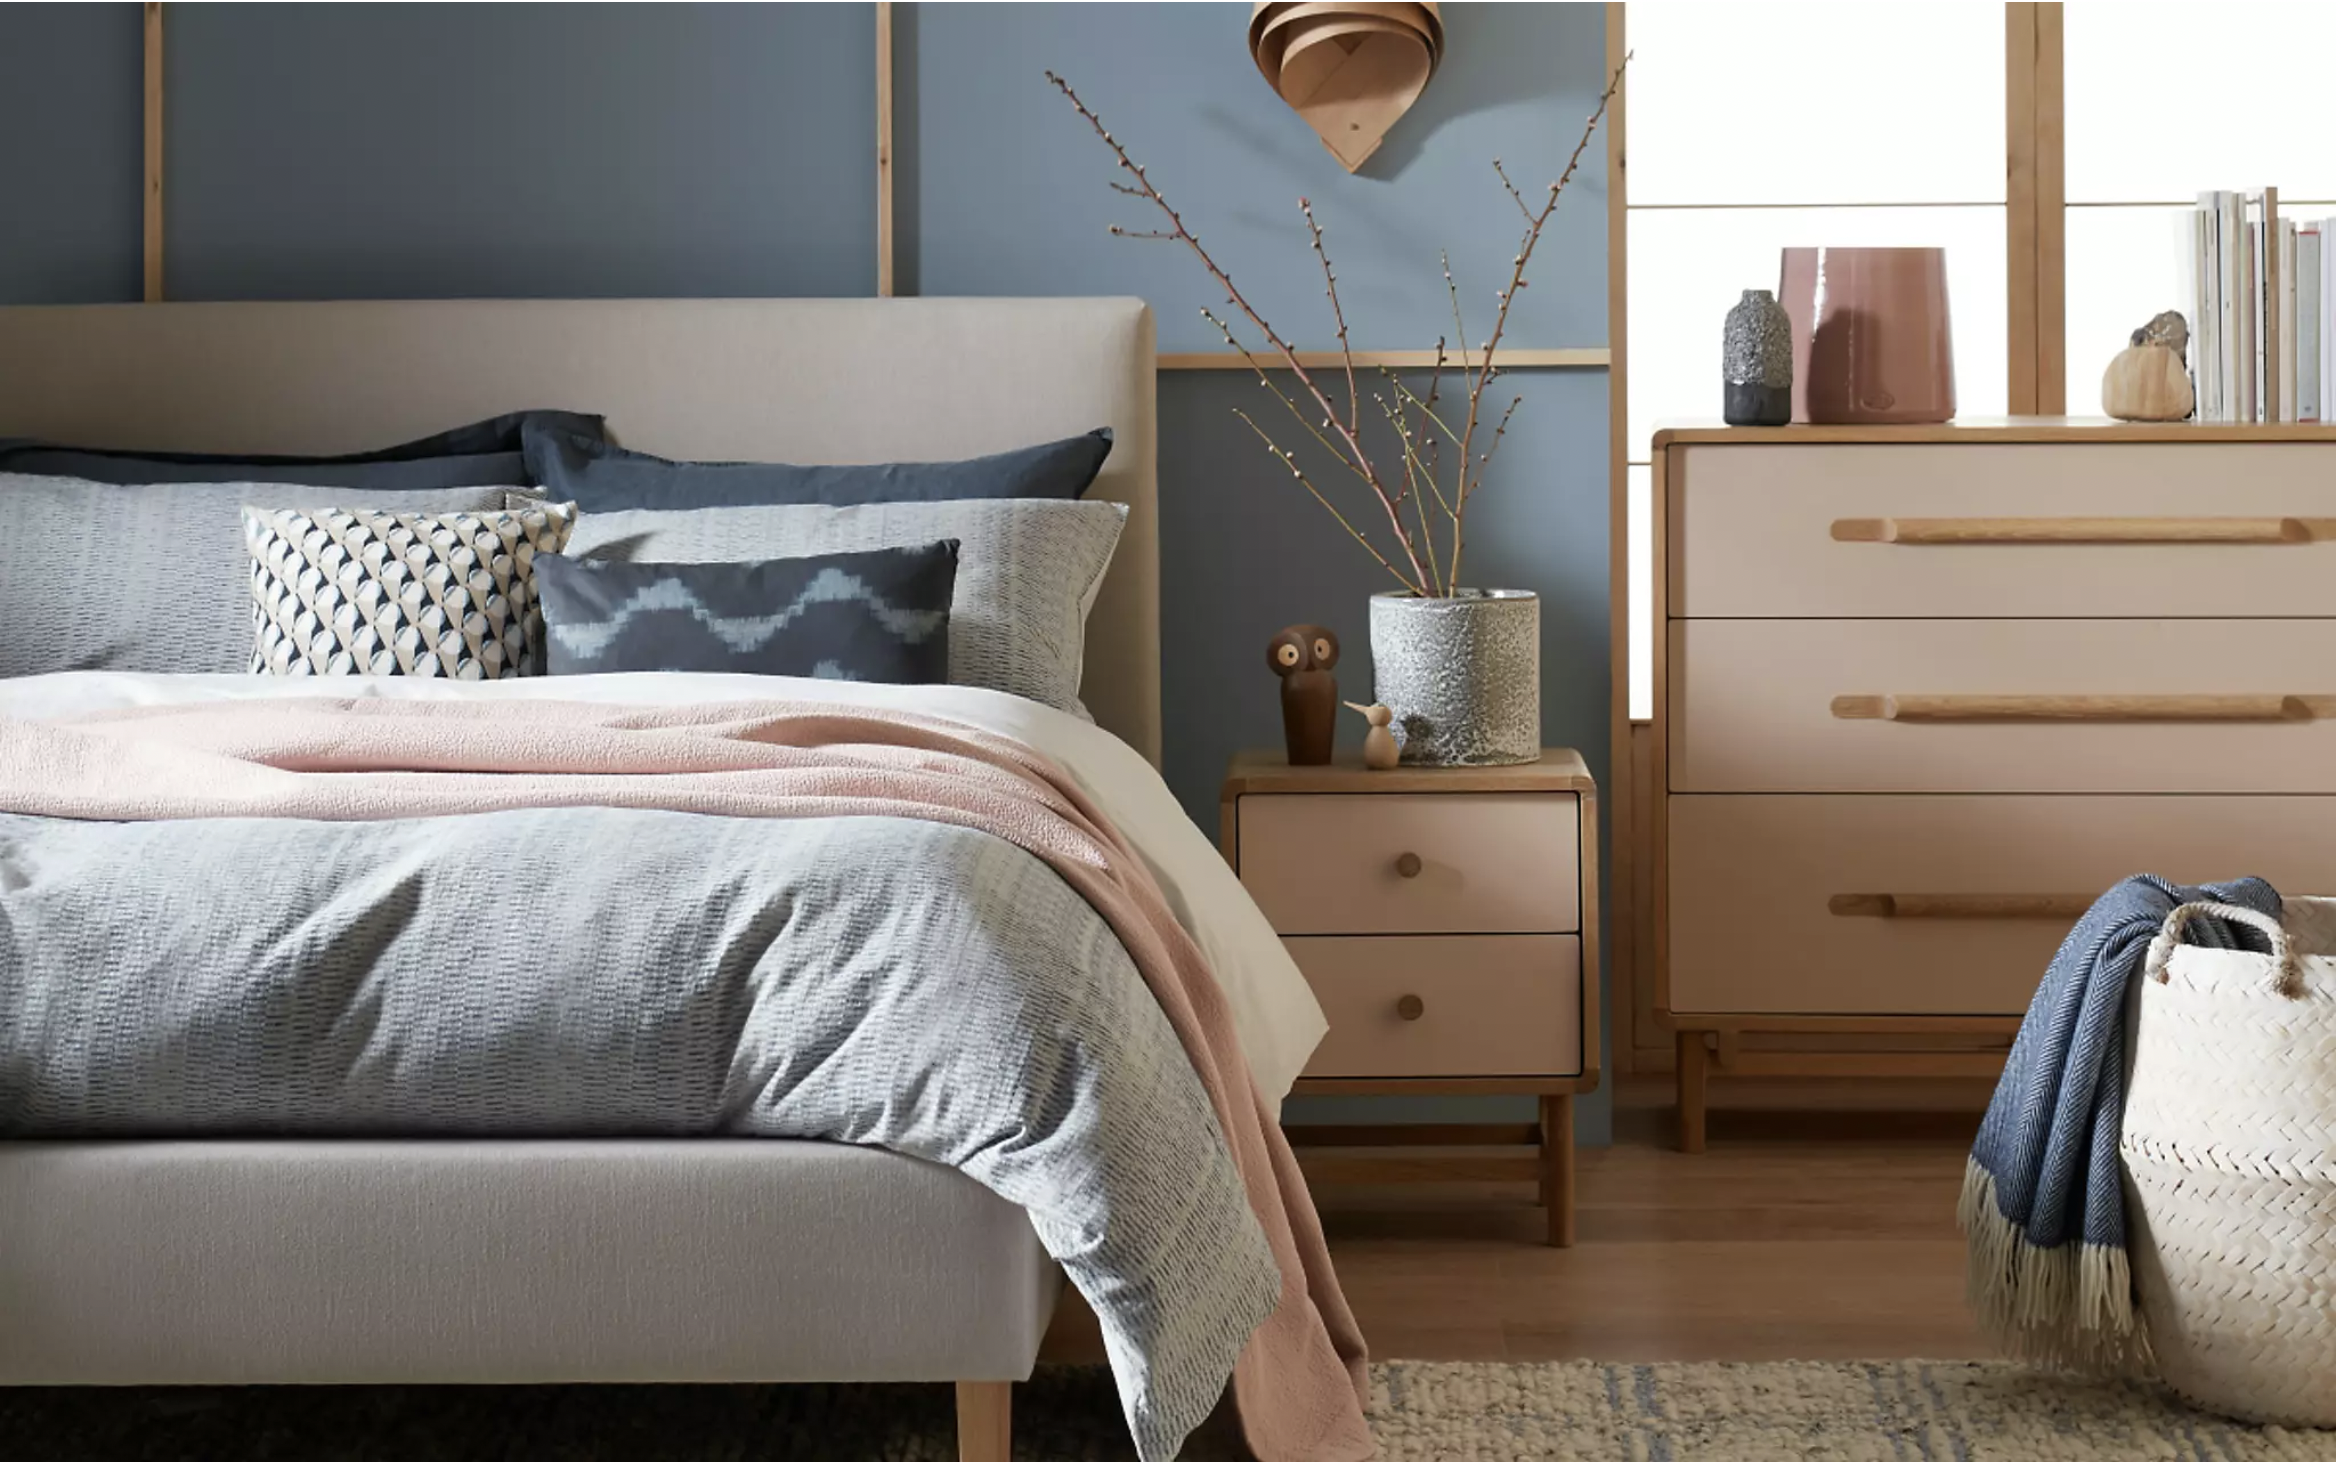 Need A New Bed But Don't Know How To Decide? Here's Some Help